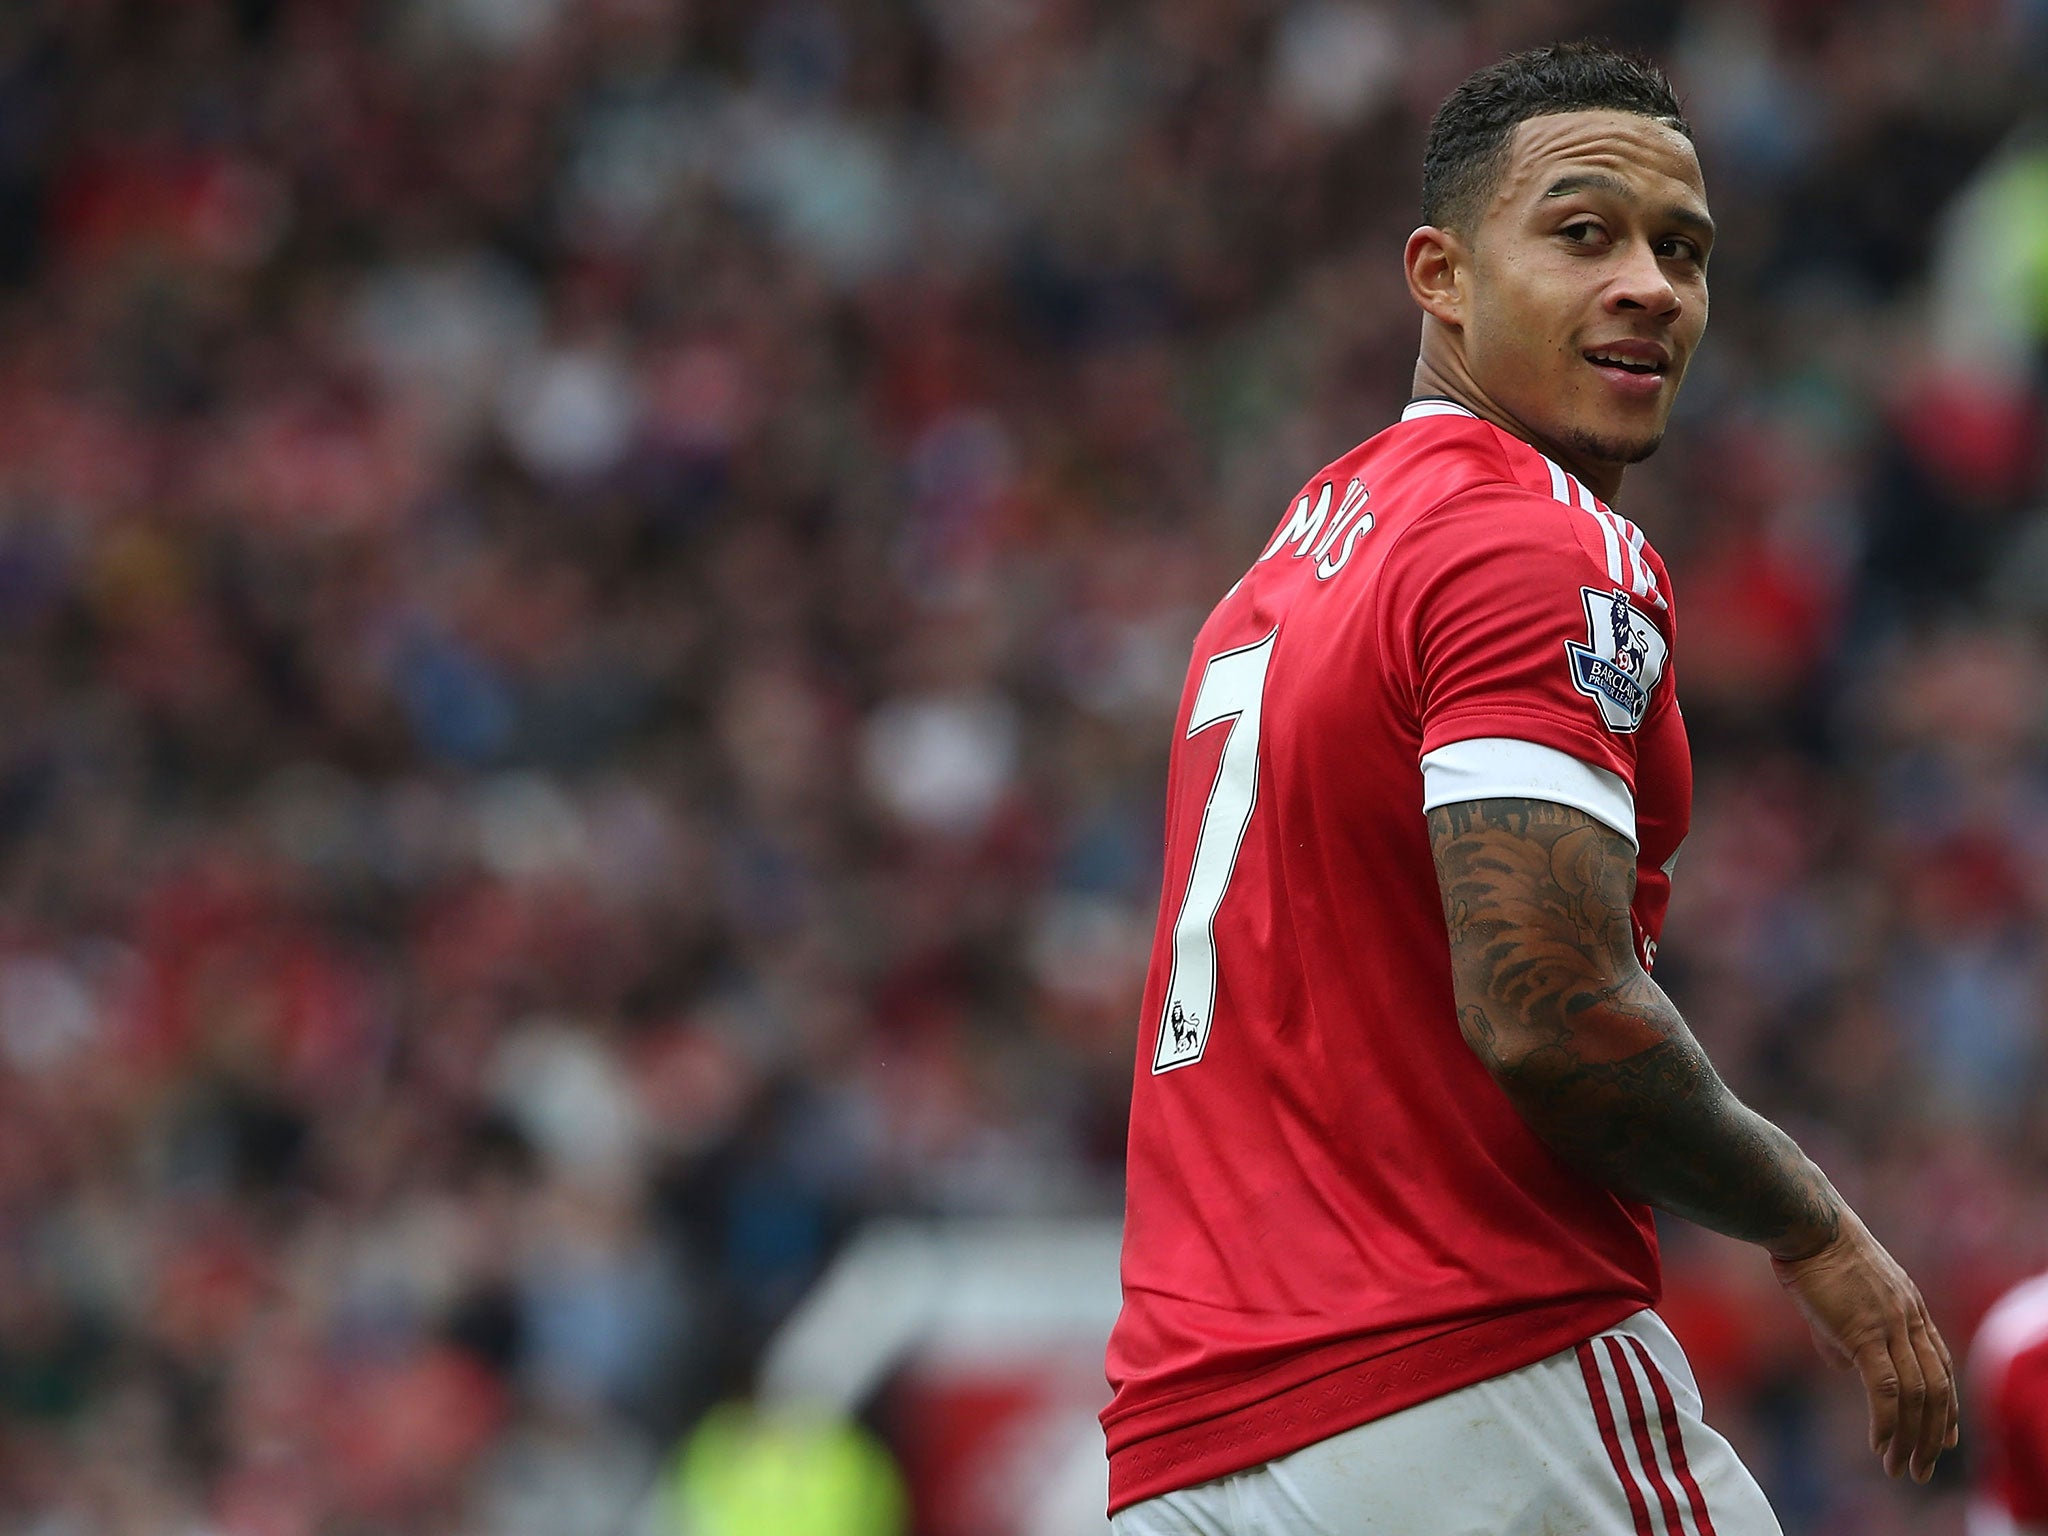 Memphis Depay reveals he gained five kilos and fell back at